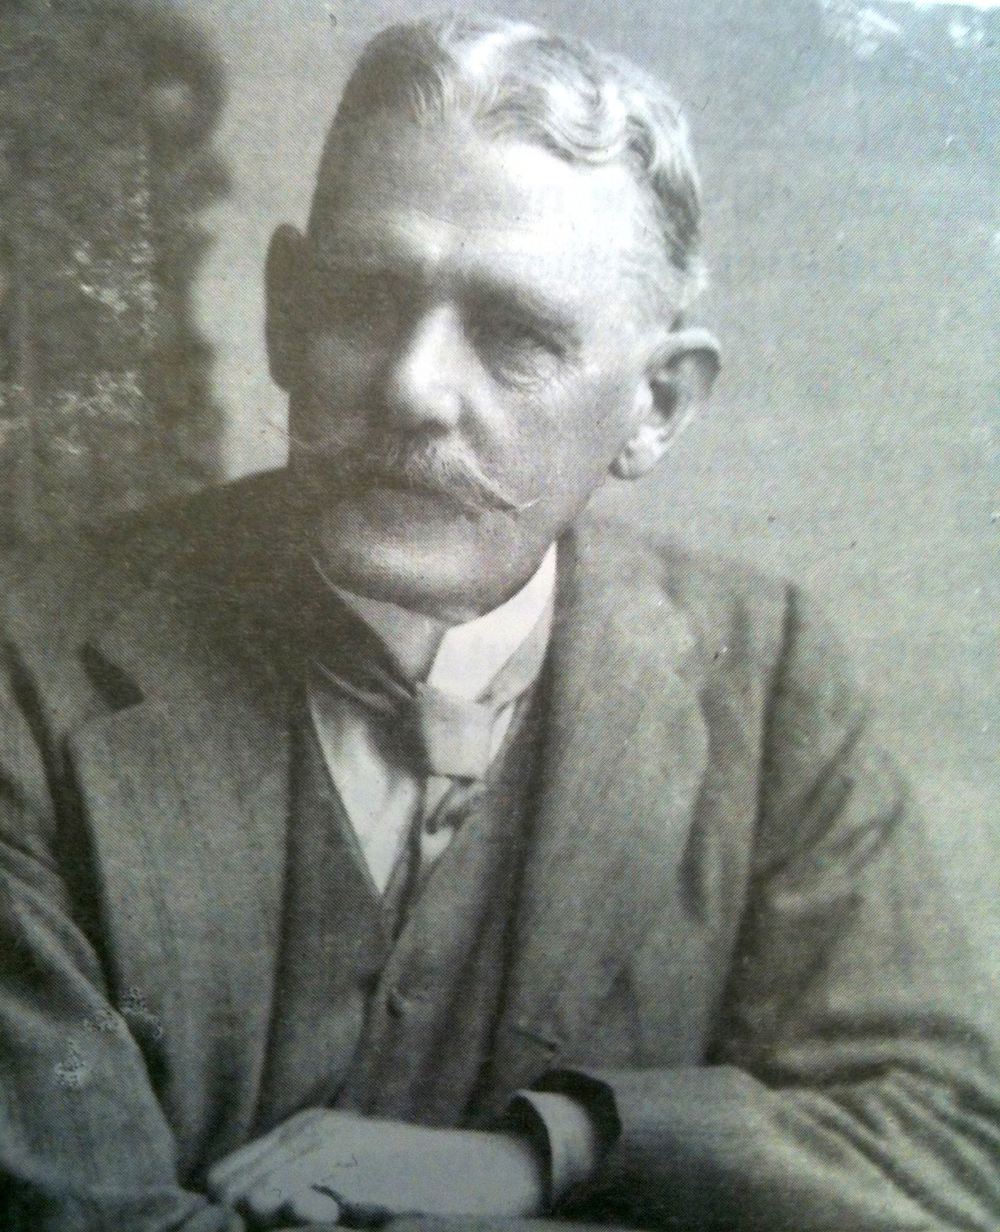 Wordsworth Donisthorpe (1847 – 1914) was an English individualist anarchist and inventor, pioneer of cinematography and chess enthusiast.